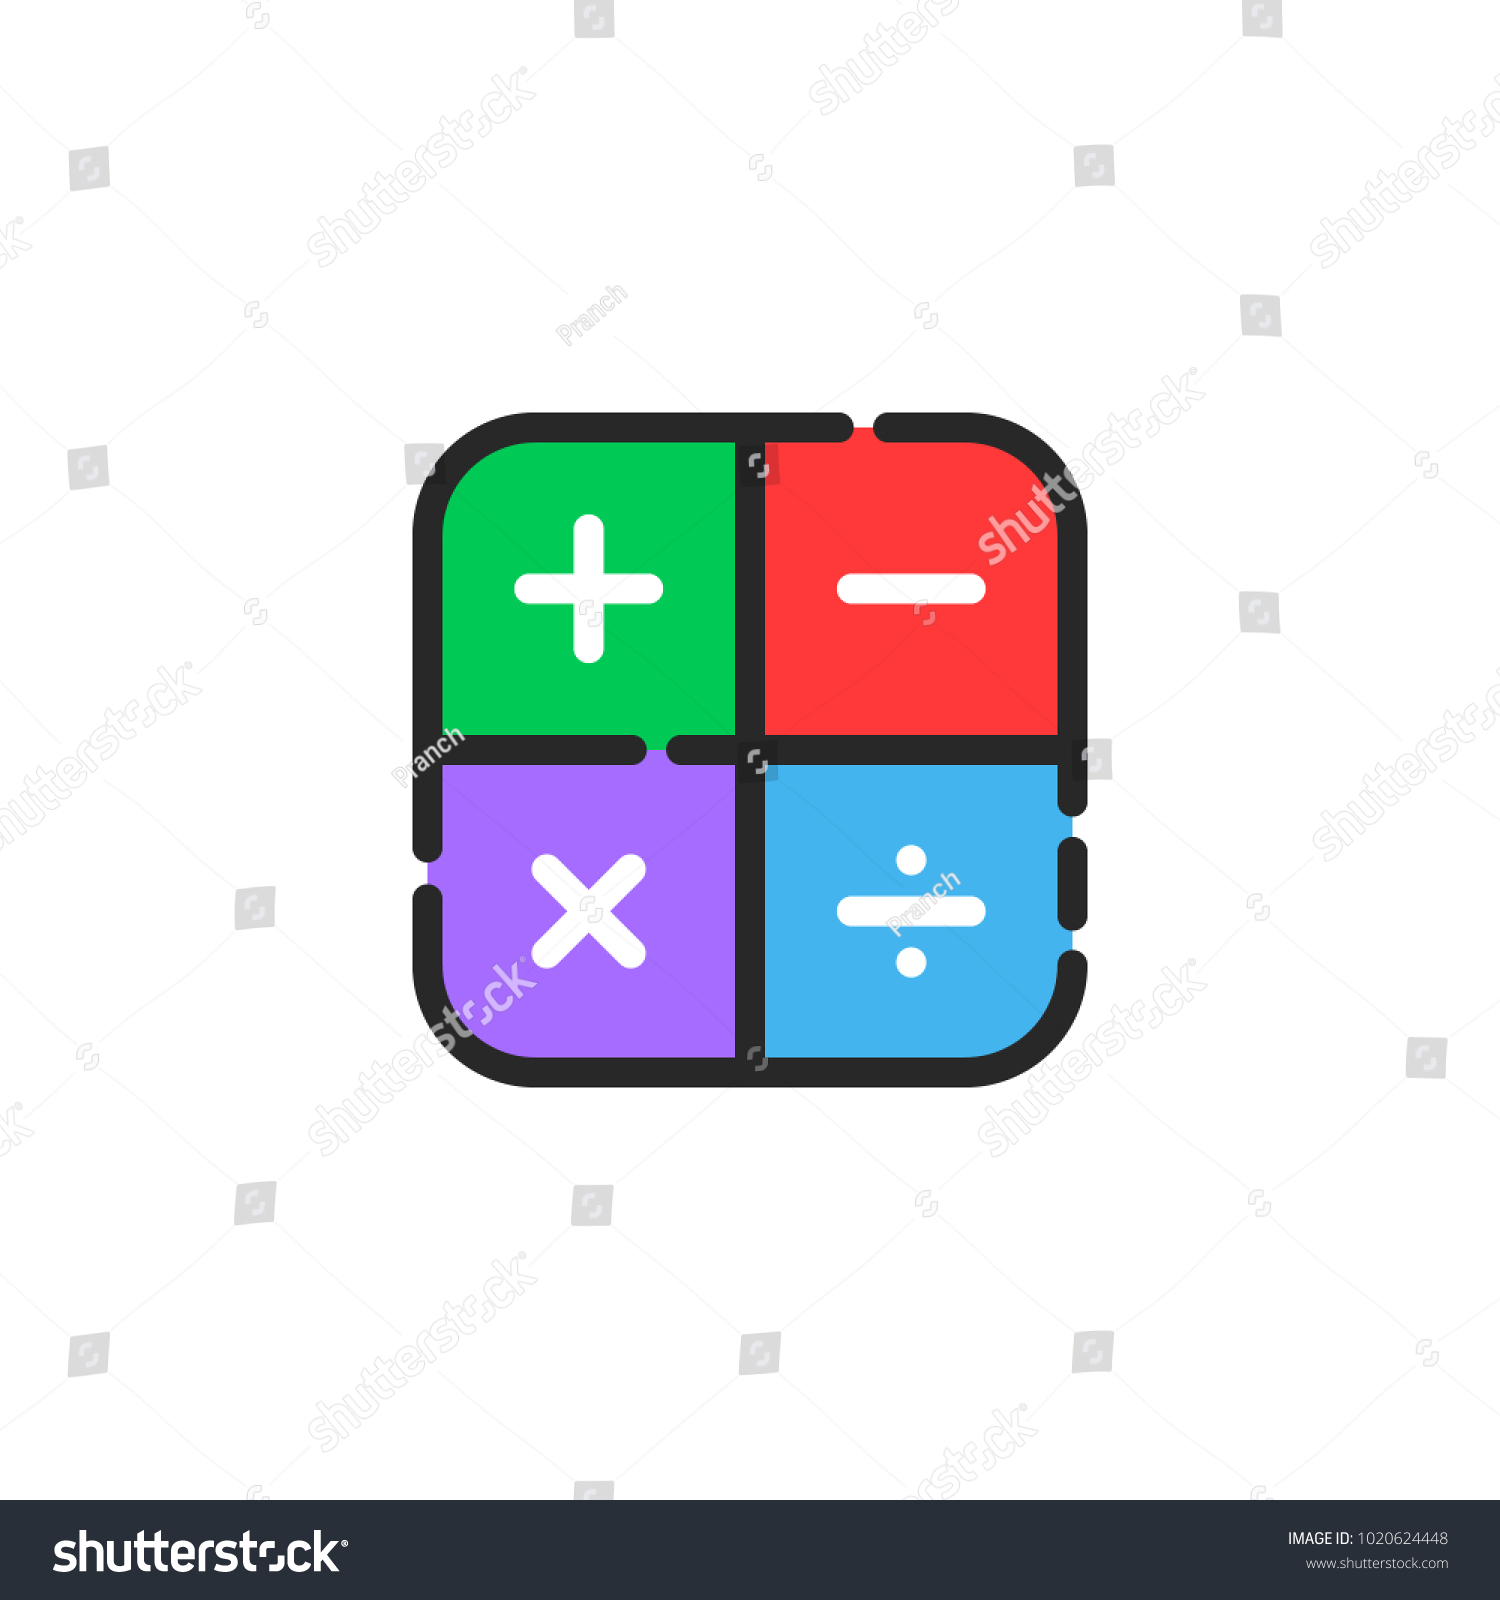 Linear color math symbol icon concept stock vector 1020624448 linear color math symbol icon concept stock vector 1020624448 shutterstock biocorpaavc Image collections